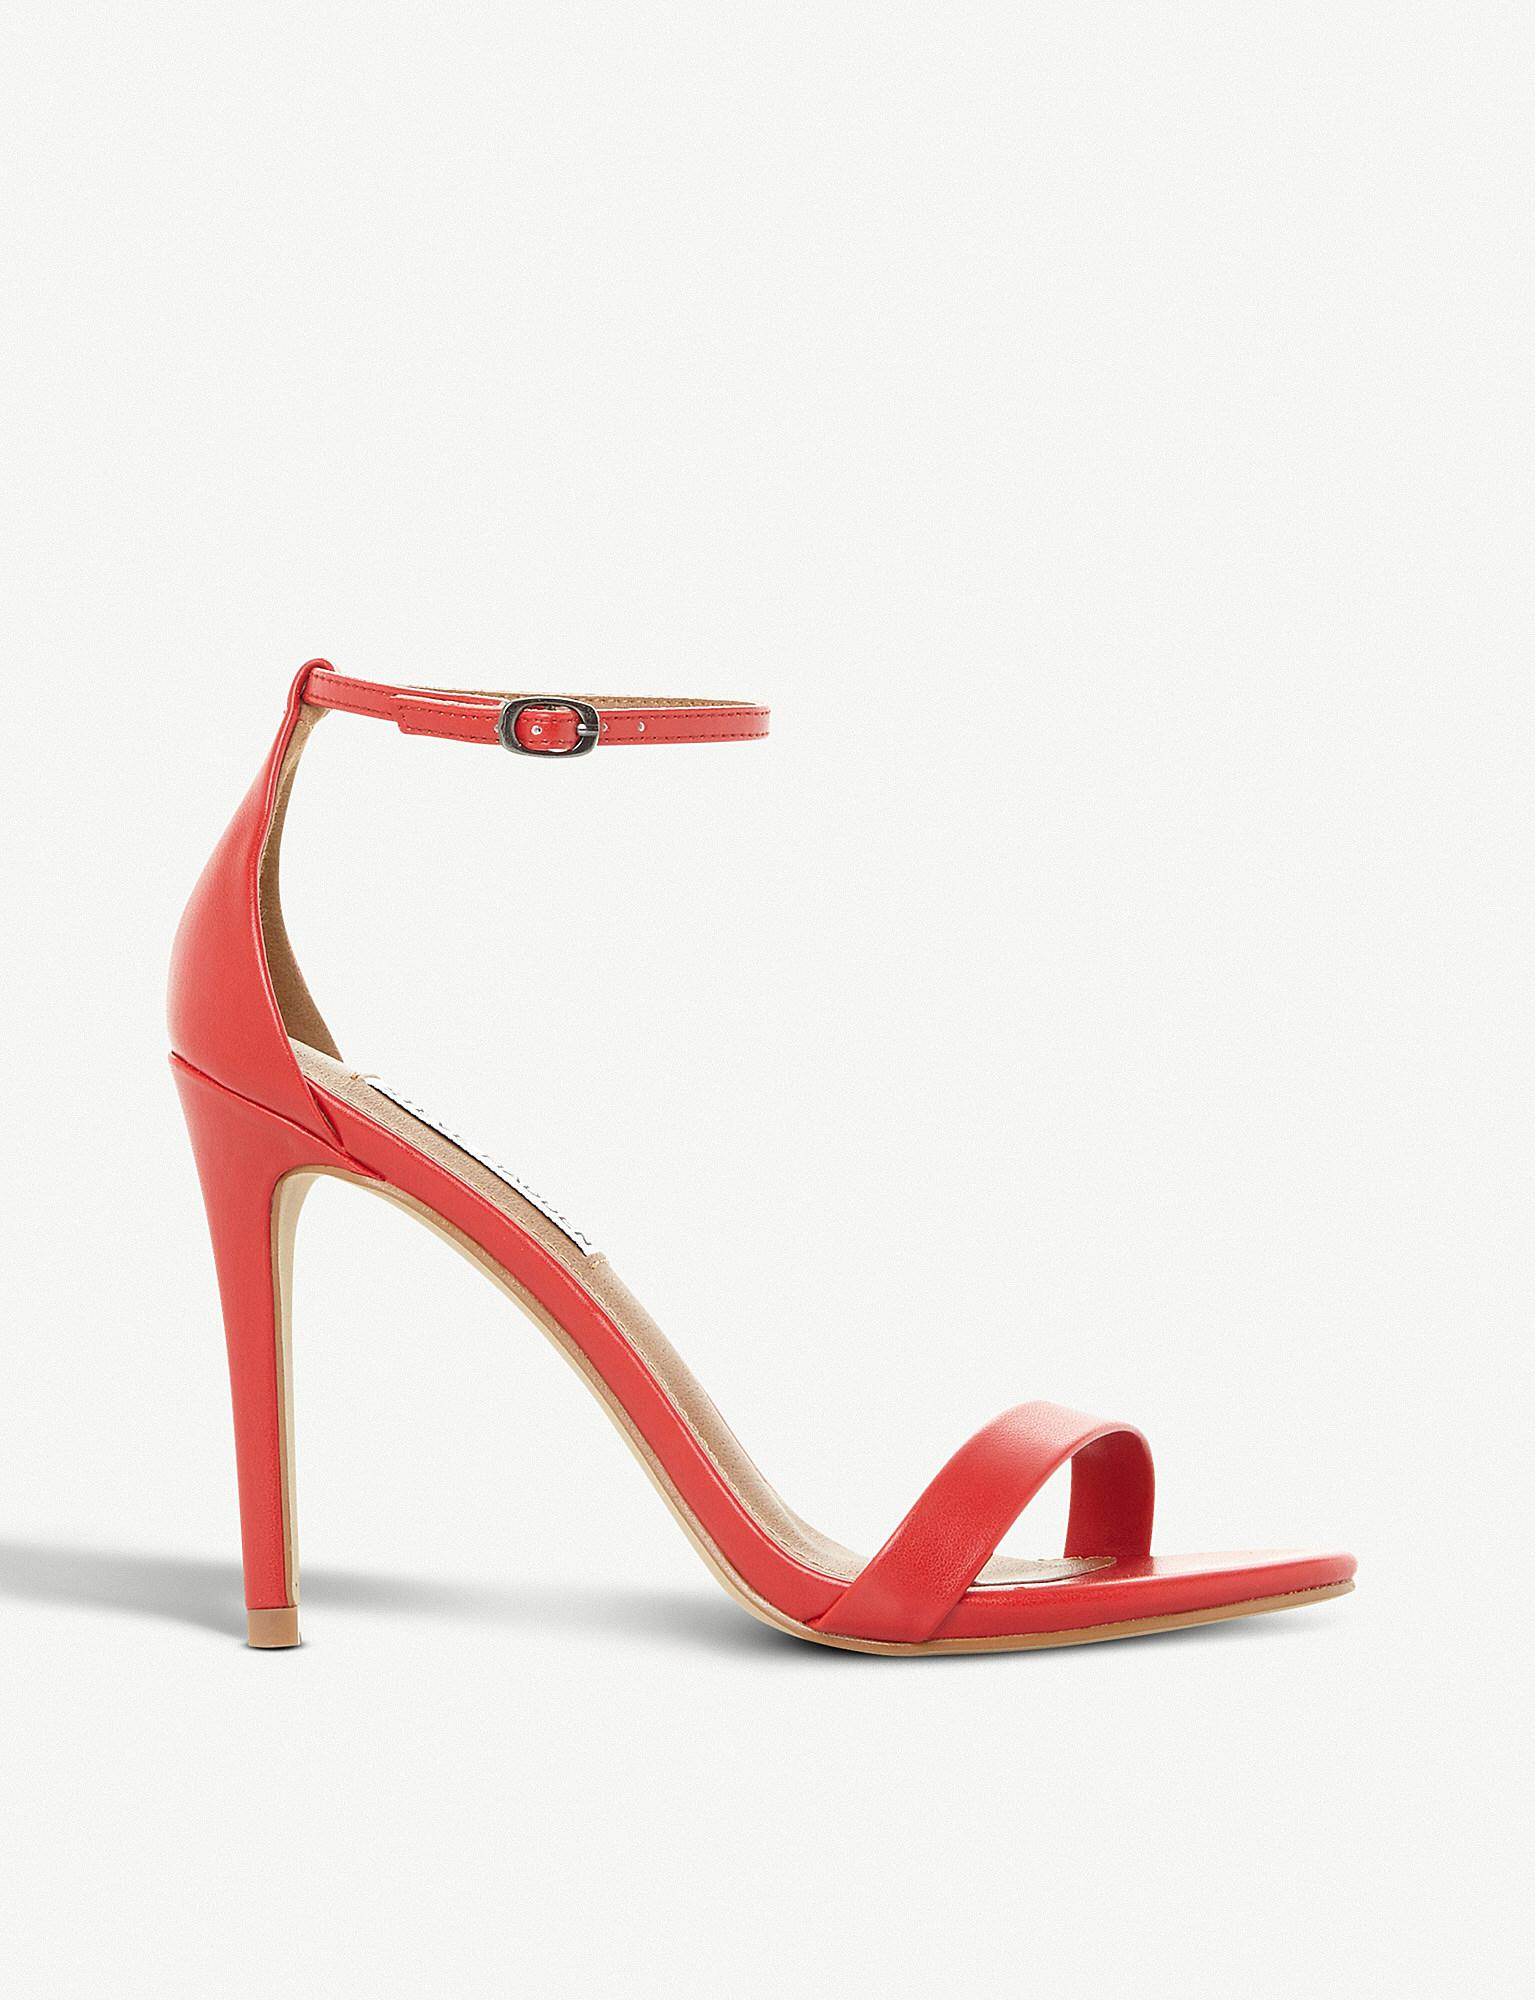 5a532d2e2ac Lyst - Steve Madden Stecy Sm Faux-leather Heeled Sandals in Red